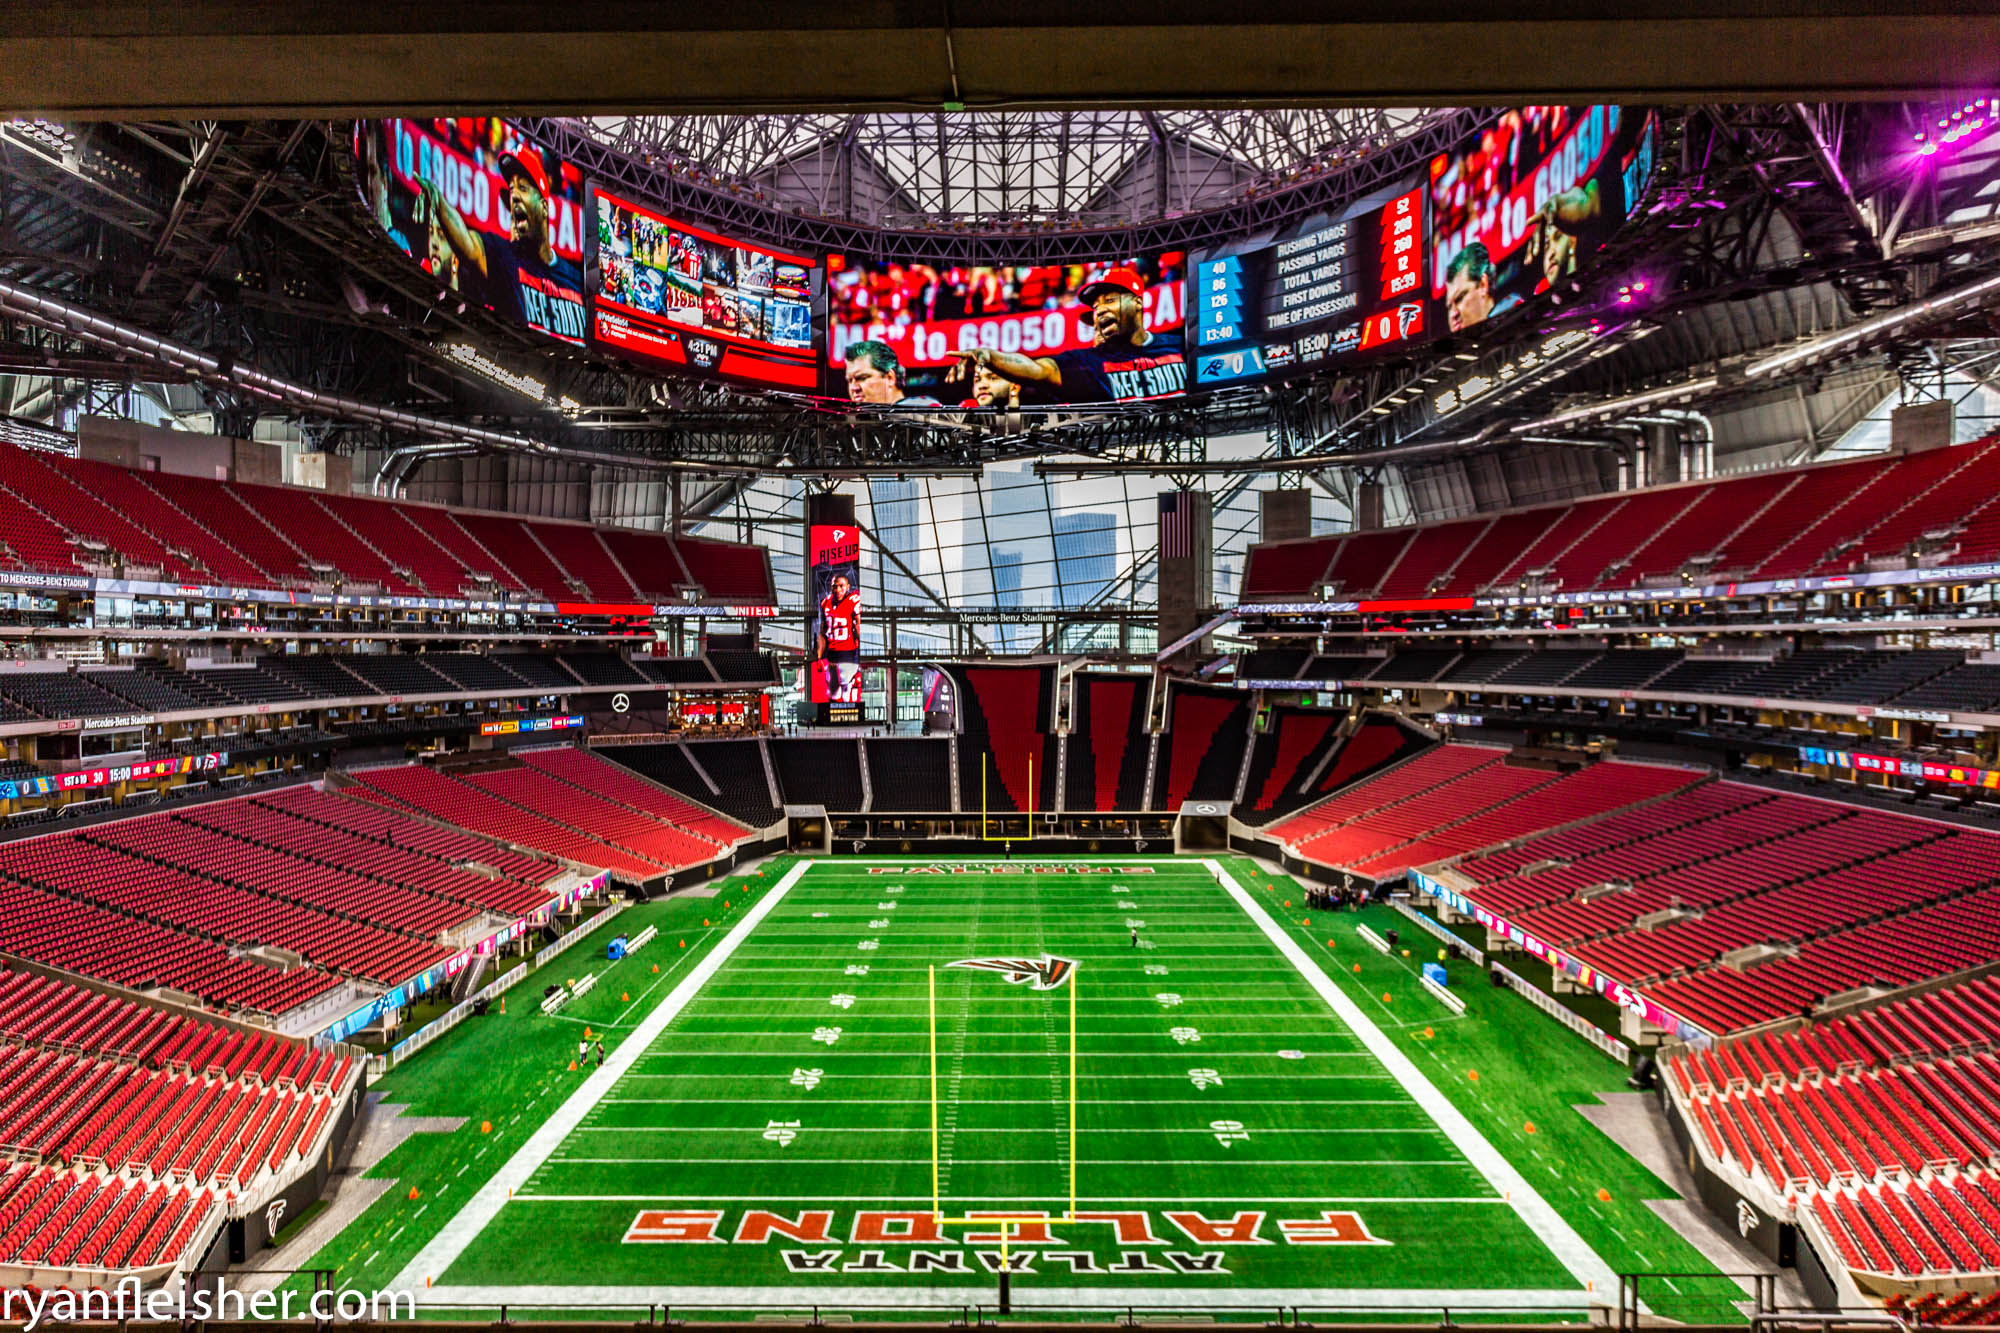 The playing field and stands inside Mercedes-Benz Stadium.